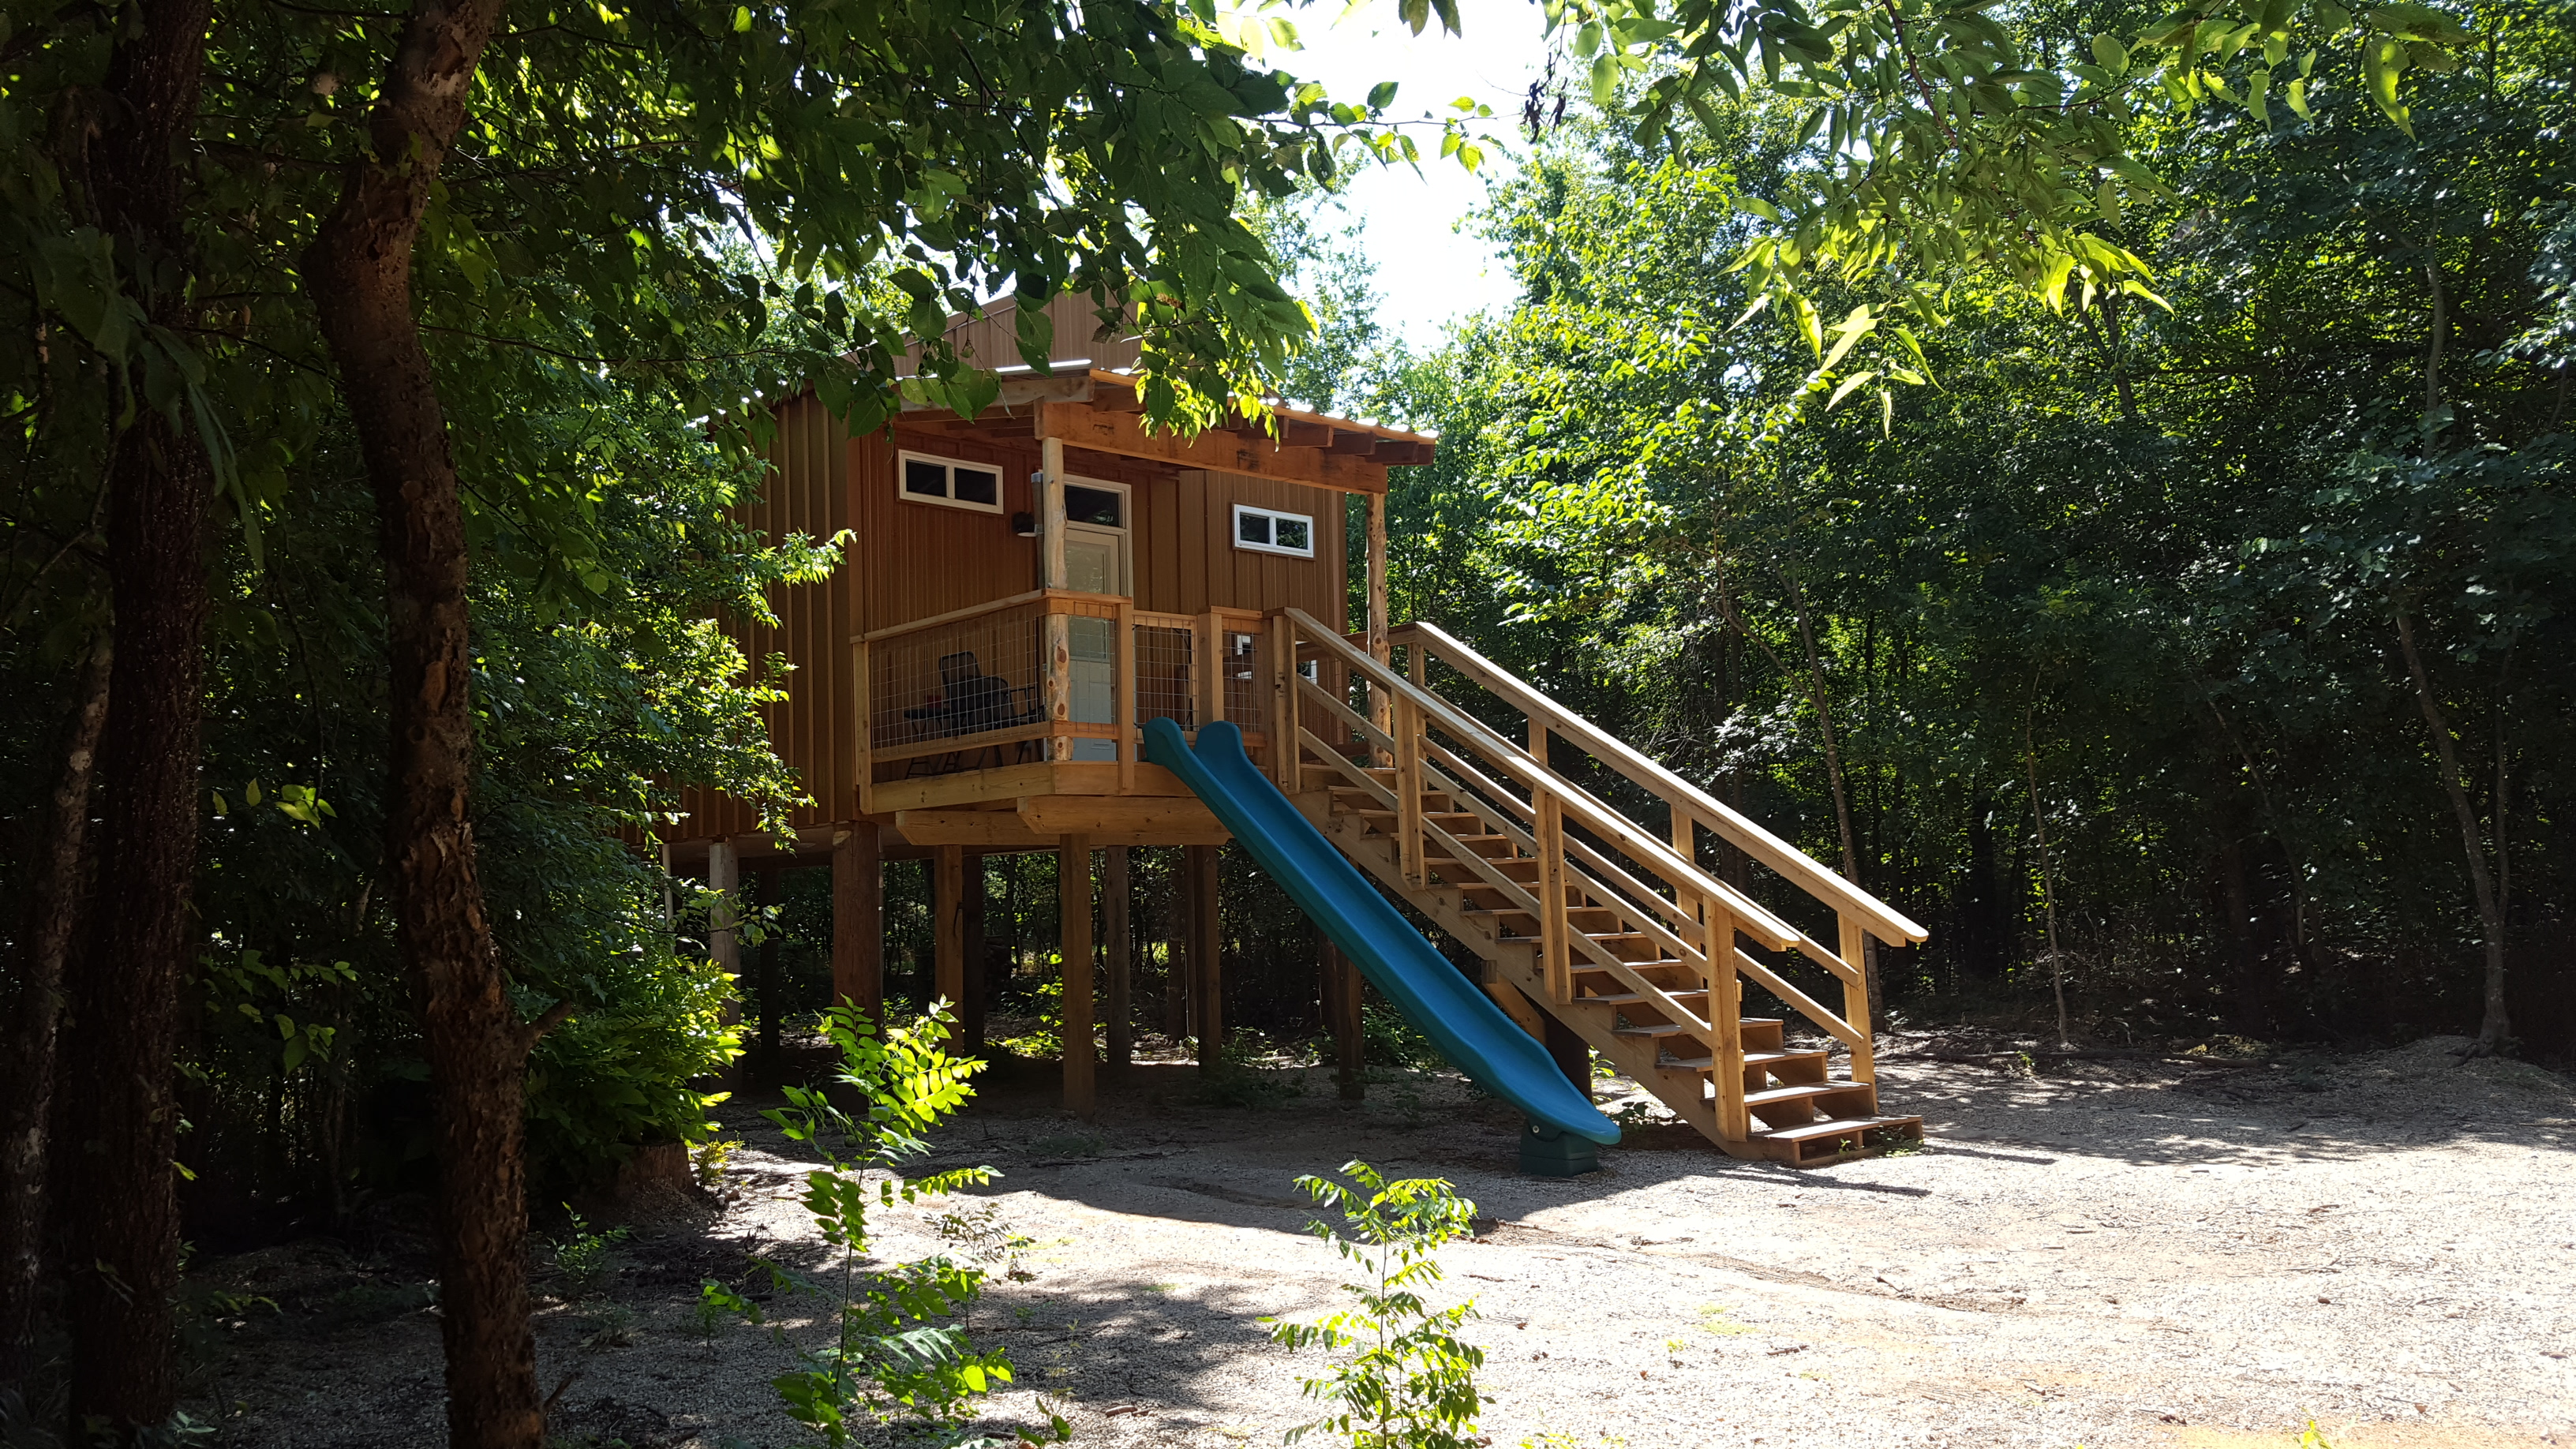 exterior fall of beau view branson talentneeds cabins oklahoma com pic cabin misty treehouse